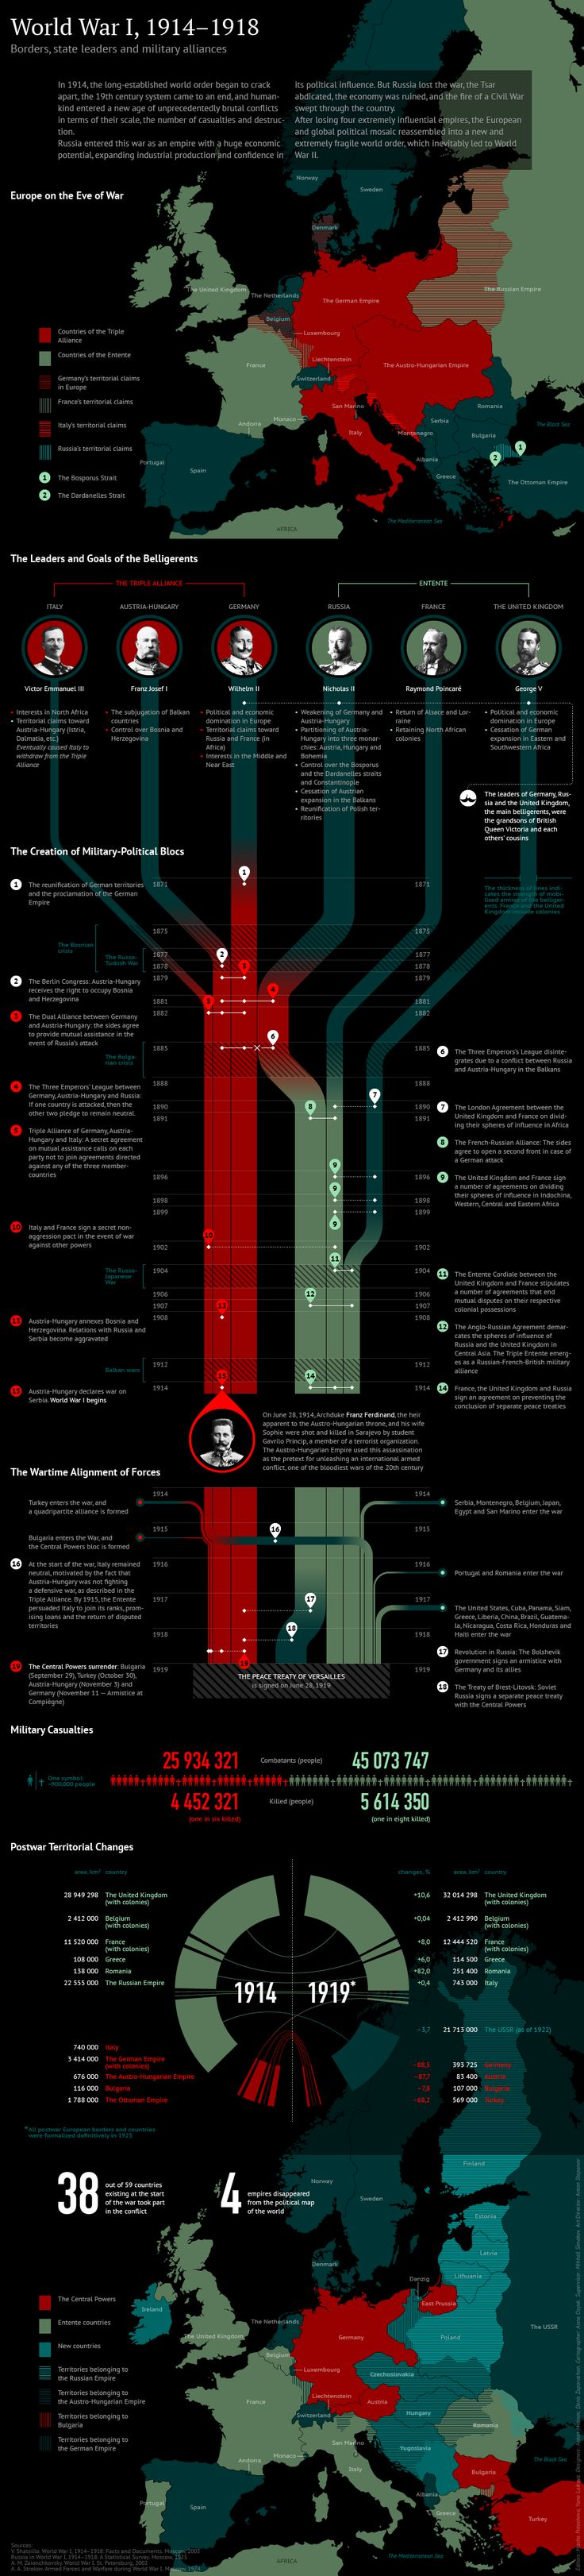 World War I, 1914-1918 #WWI | #Infographic repinned by @Piktochart | Create yours at www.piktochart.com